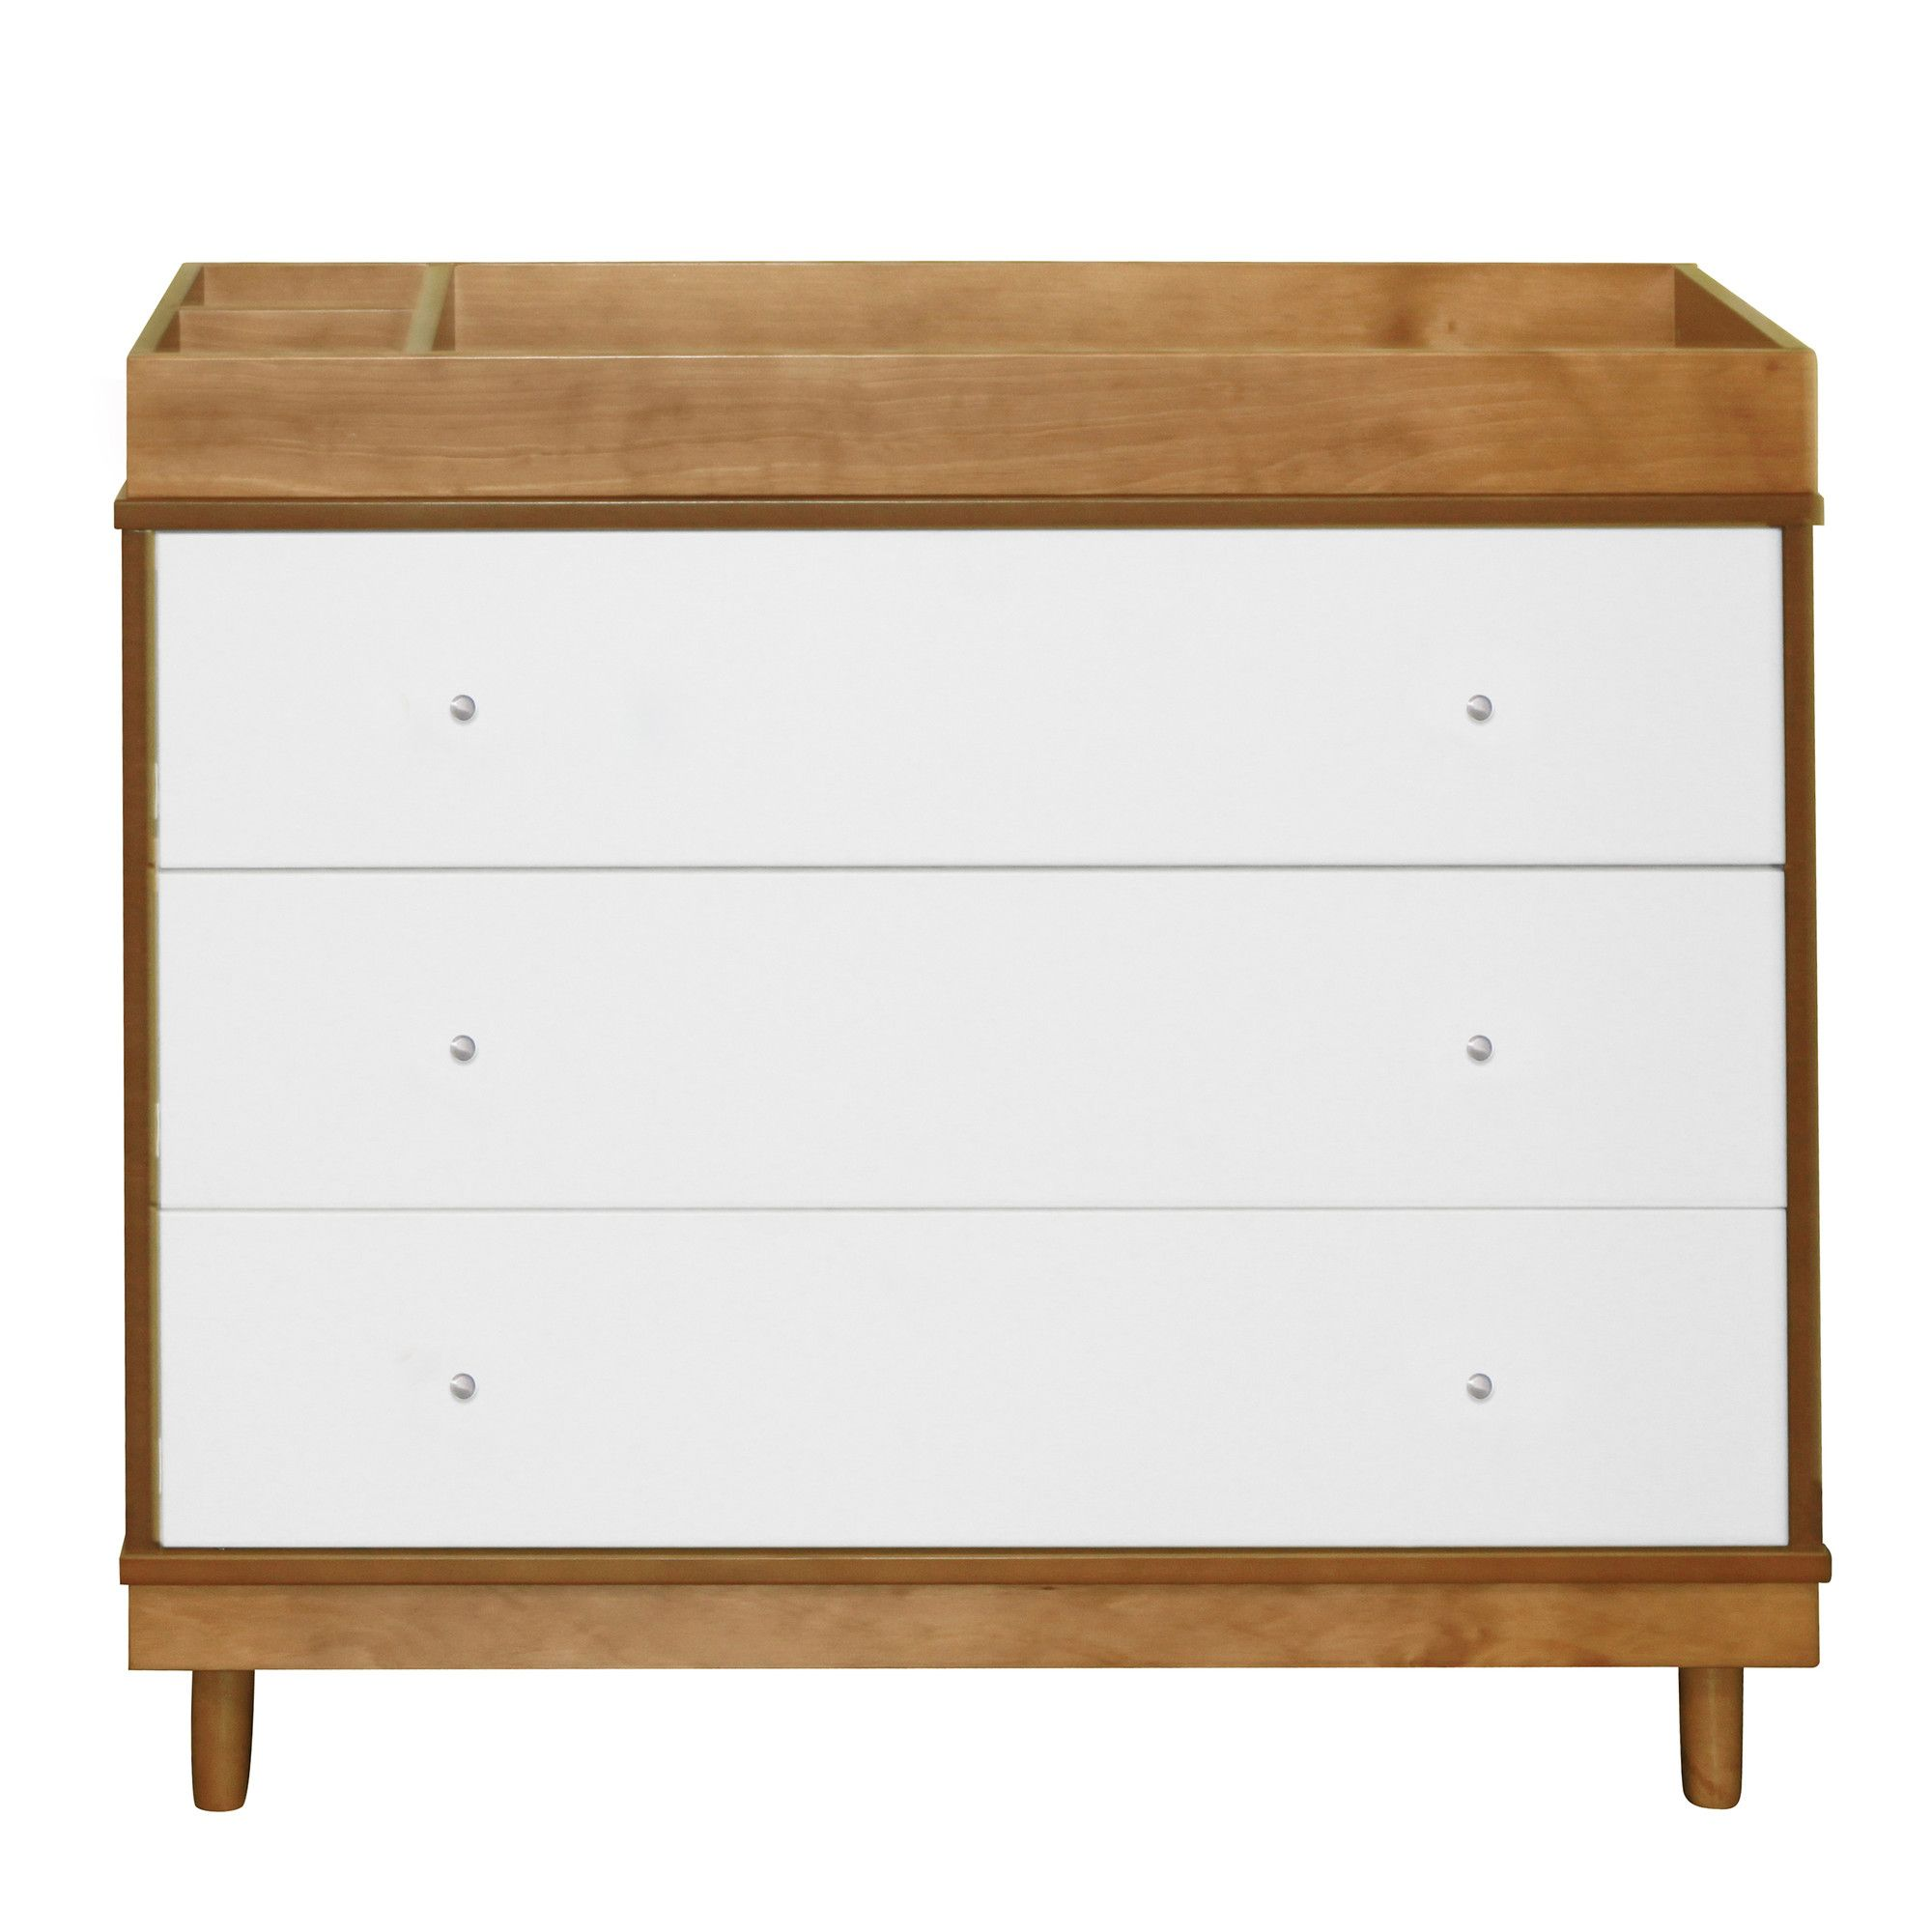 babyletto Skip 3 Drawer Changer Dresser & Reviews | Wayfair ...